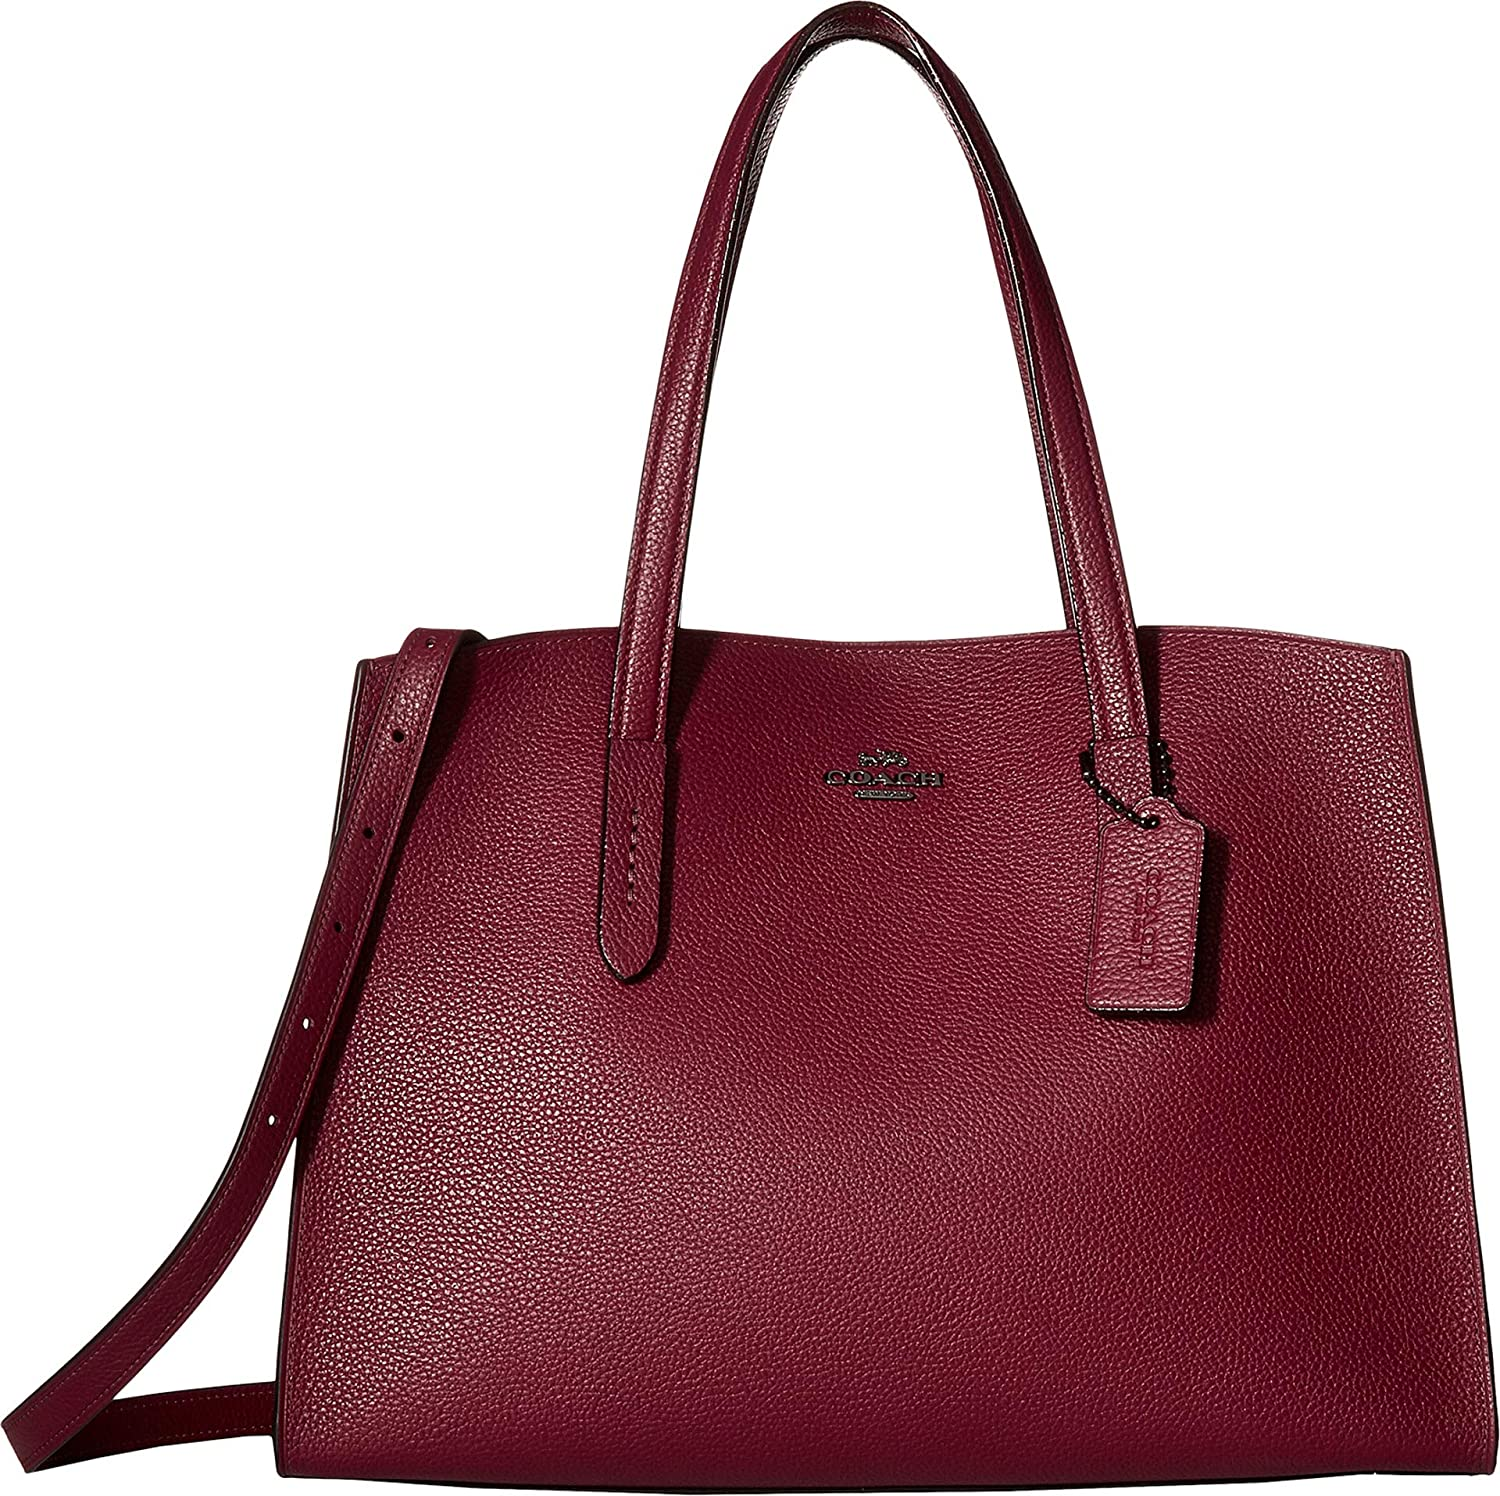 497c4dfc3 COACH Women's Metallic Interior Charlie Carryall Gunmetal/Dark Berry One  Size: Handbags: Amazon.com